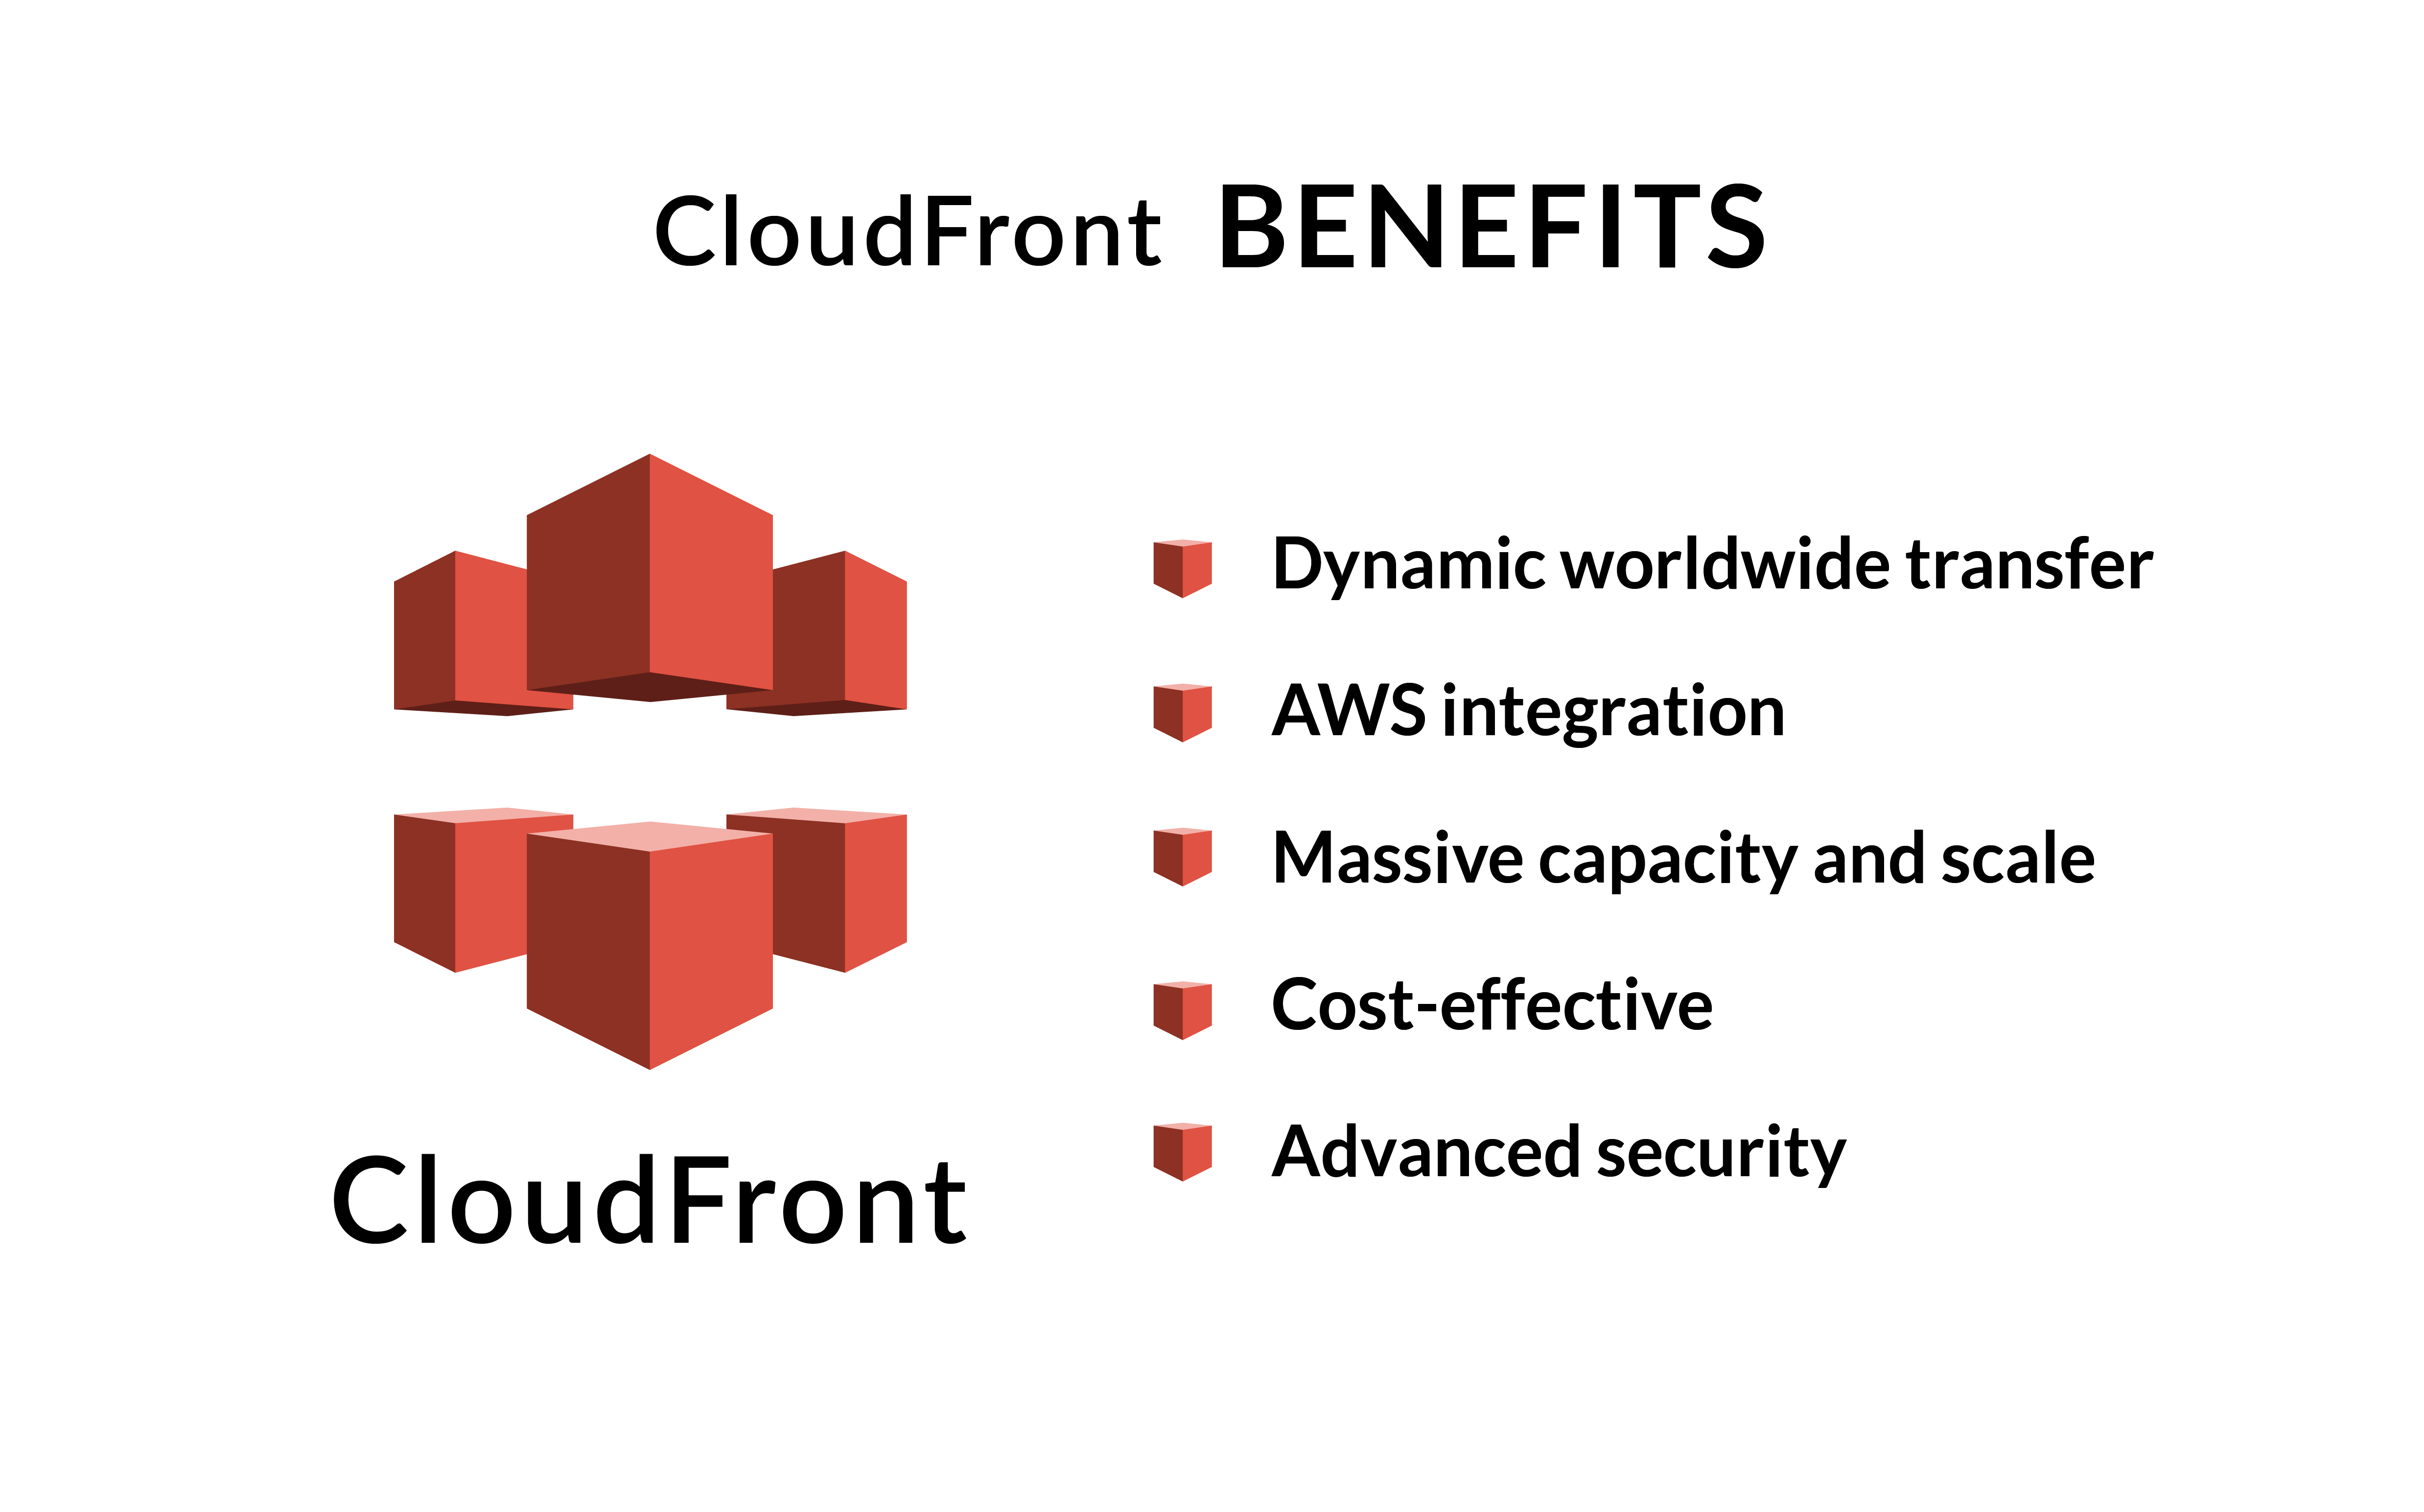 CloudFront benefits